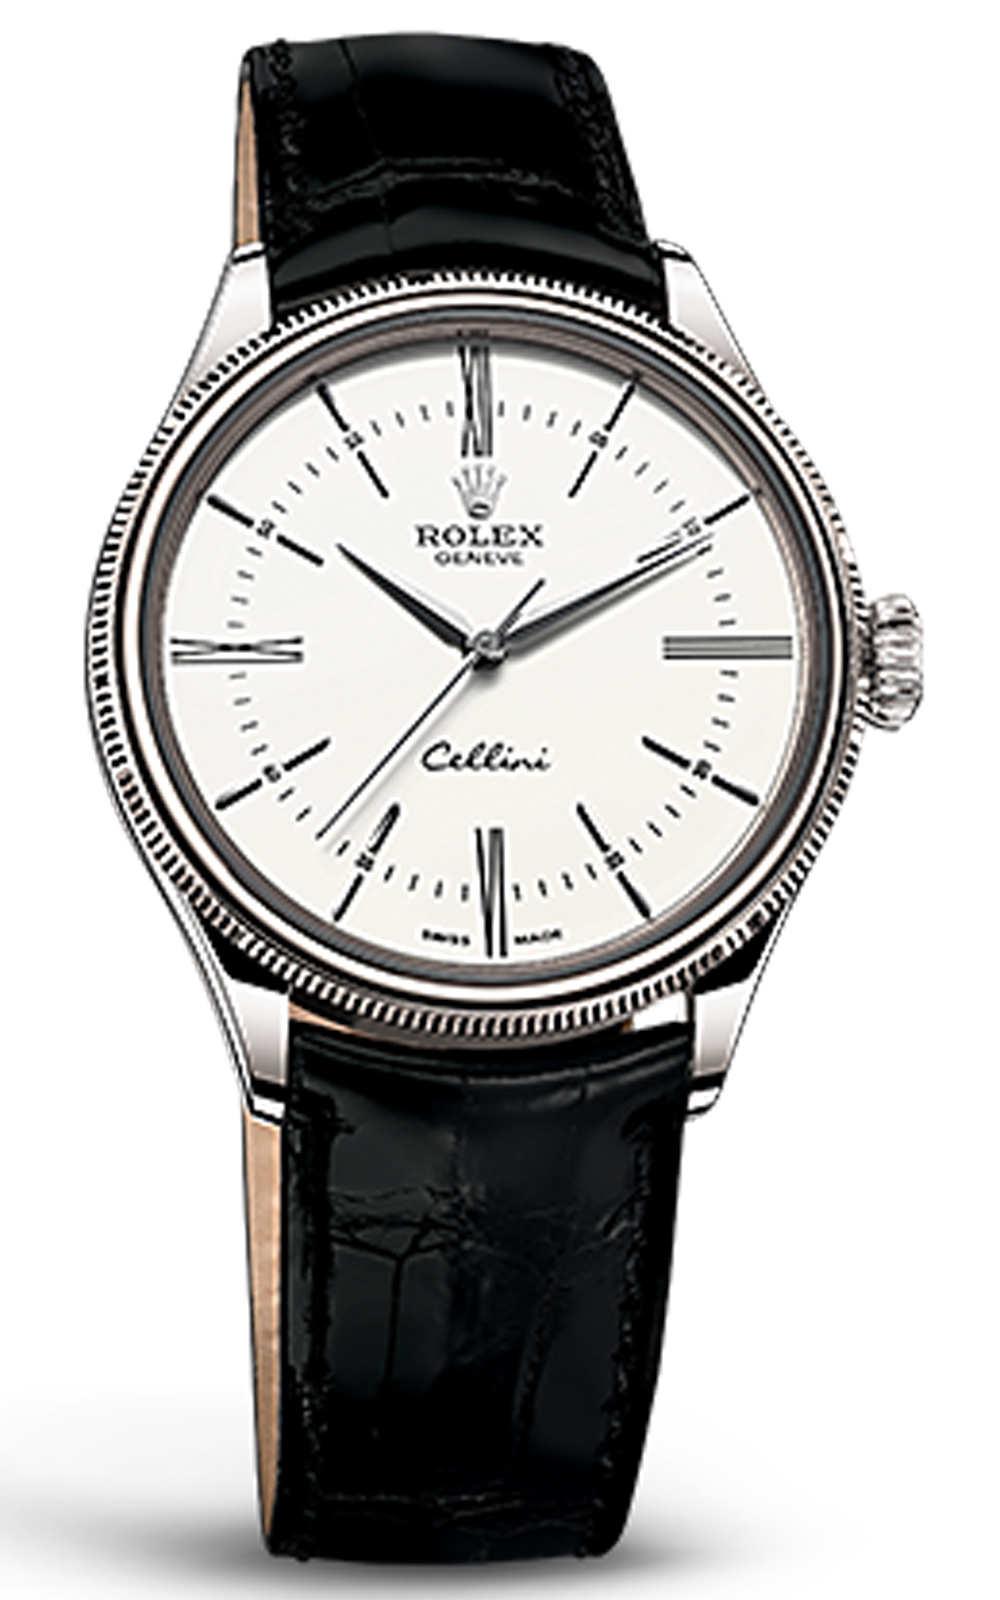 đồng hồ Rolex cellini time 18 ct white gold, polished finish black leather 50509-0007, 39mm